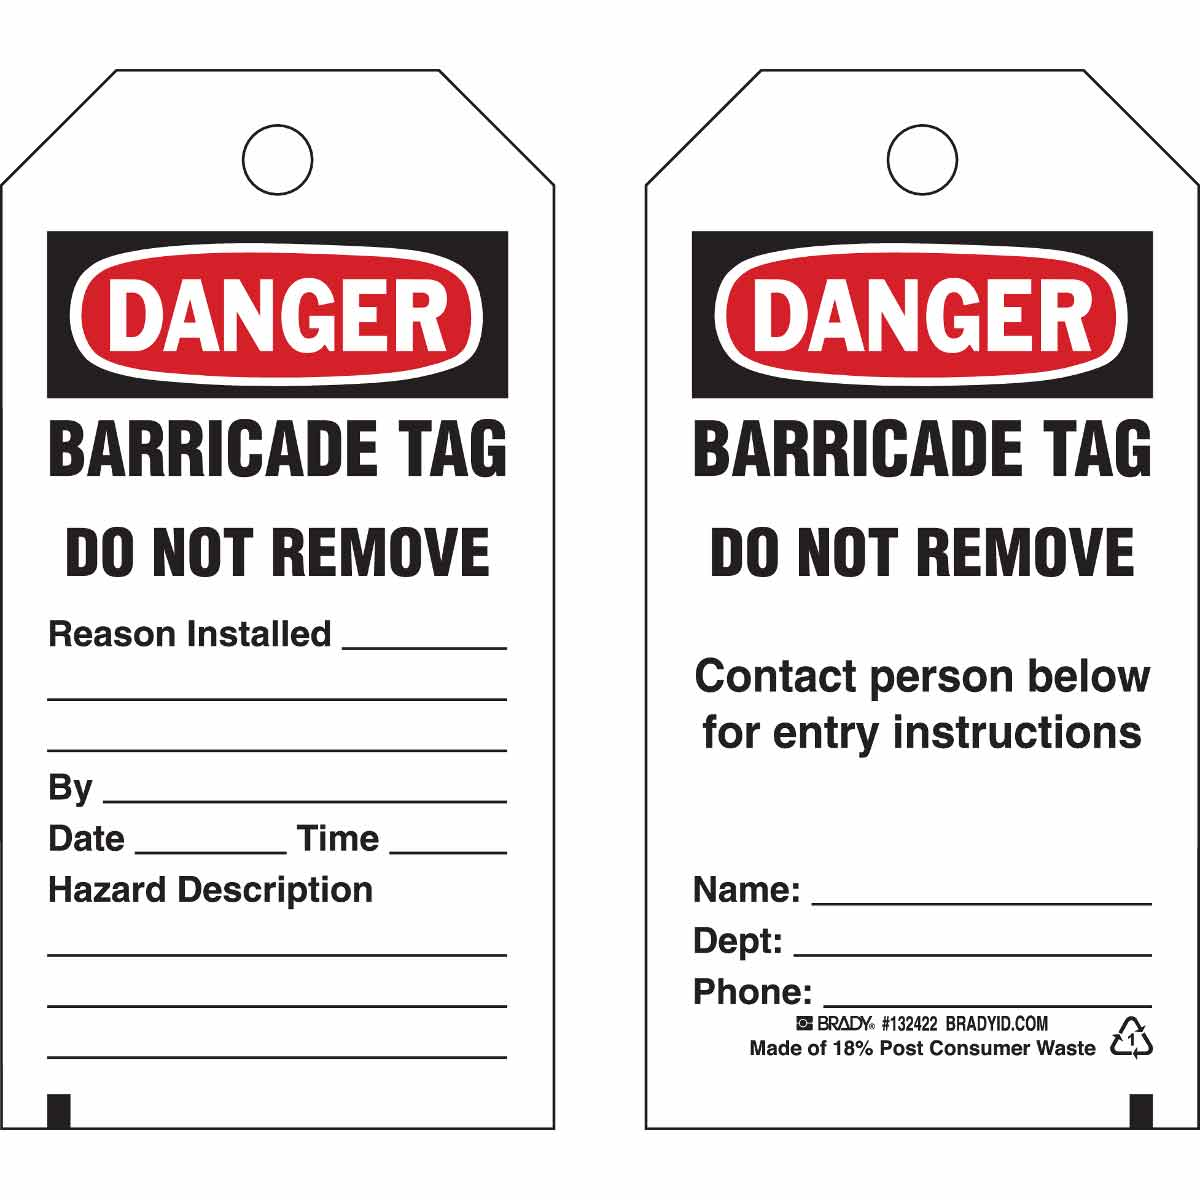 Brady® 132422 2-Sided Rectangular Barricade Tag, 5-3/4 in H x 3 in W, Black/Red on White, 3/8 in Hole, B-851 Polyester